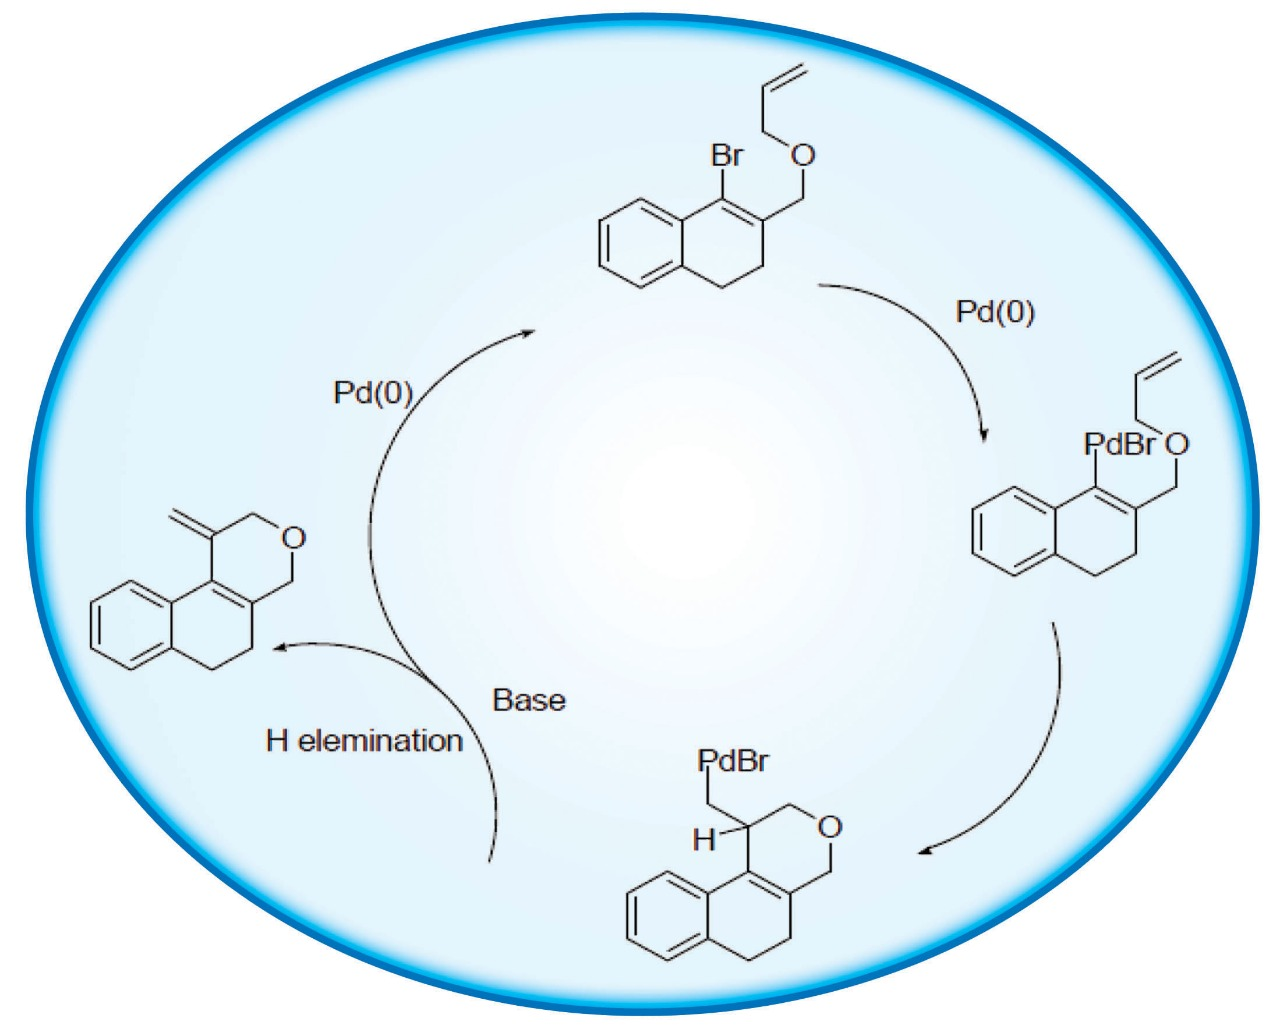 Synthesis of Fused Pyran and Tetracyclic Pyran Rings by Intramolecular Palladium-catalyzed β-H Elimination and C–H Bond Functionalization